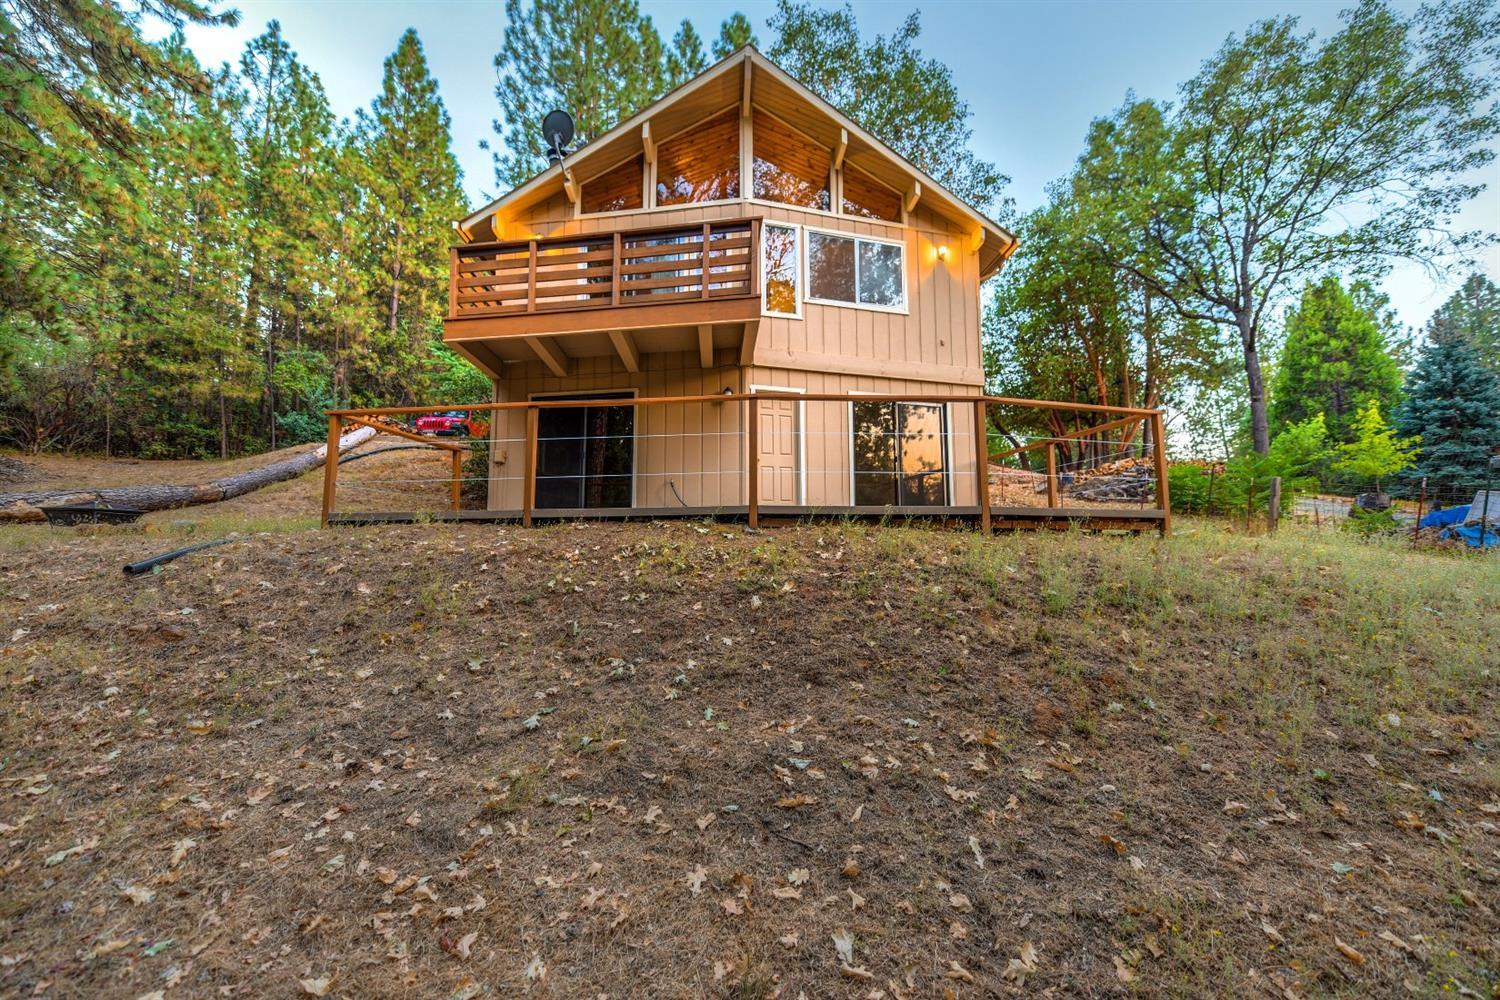 Local Real Estate: Homes for Sale — Pine Grove, CA — Coldwell Banker